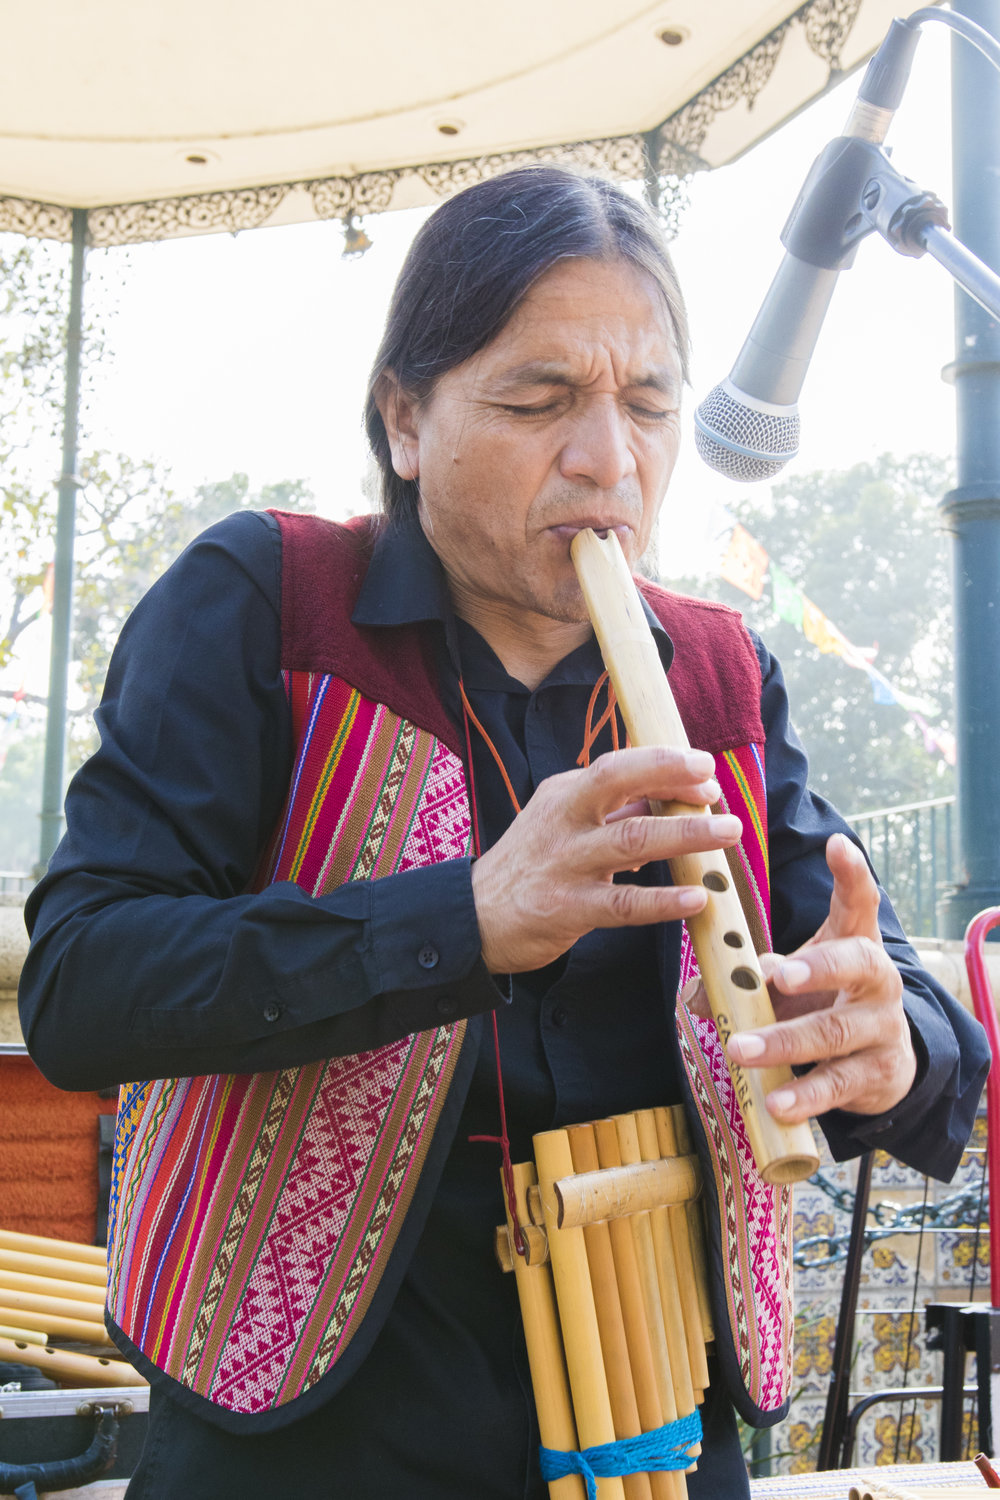 "Jonh Mosquera also known as ""Cayambe the Man from the Andes"" performs one of his originally composed songs to a small crowd on Olvera Street on October 29, 2018. Jonh has been selling his CD's on Olvera Street since the 1990's and has seen a dramatic decline in sales in recent years. However, he does not mind, because he makes music to be happy. It is not about the money for him. (Zane Meyer-Thornton/Corsair Photo)"